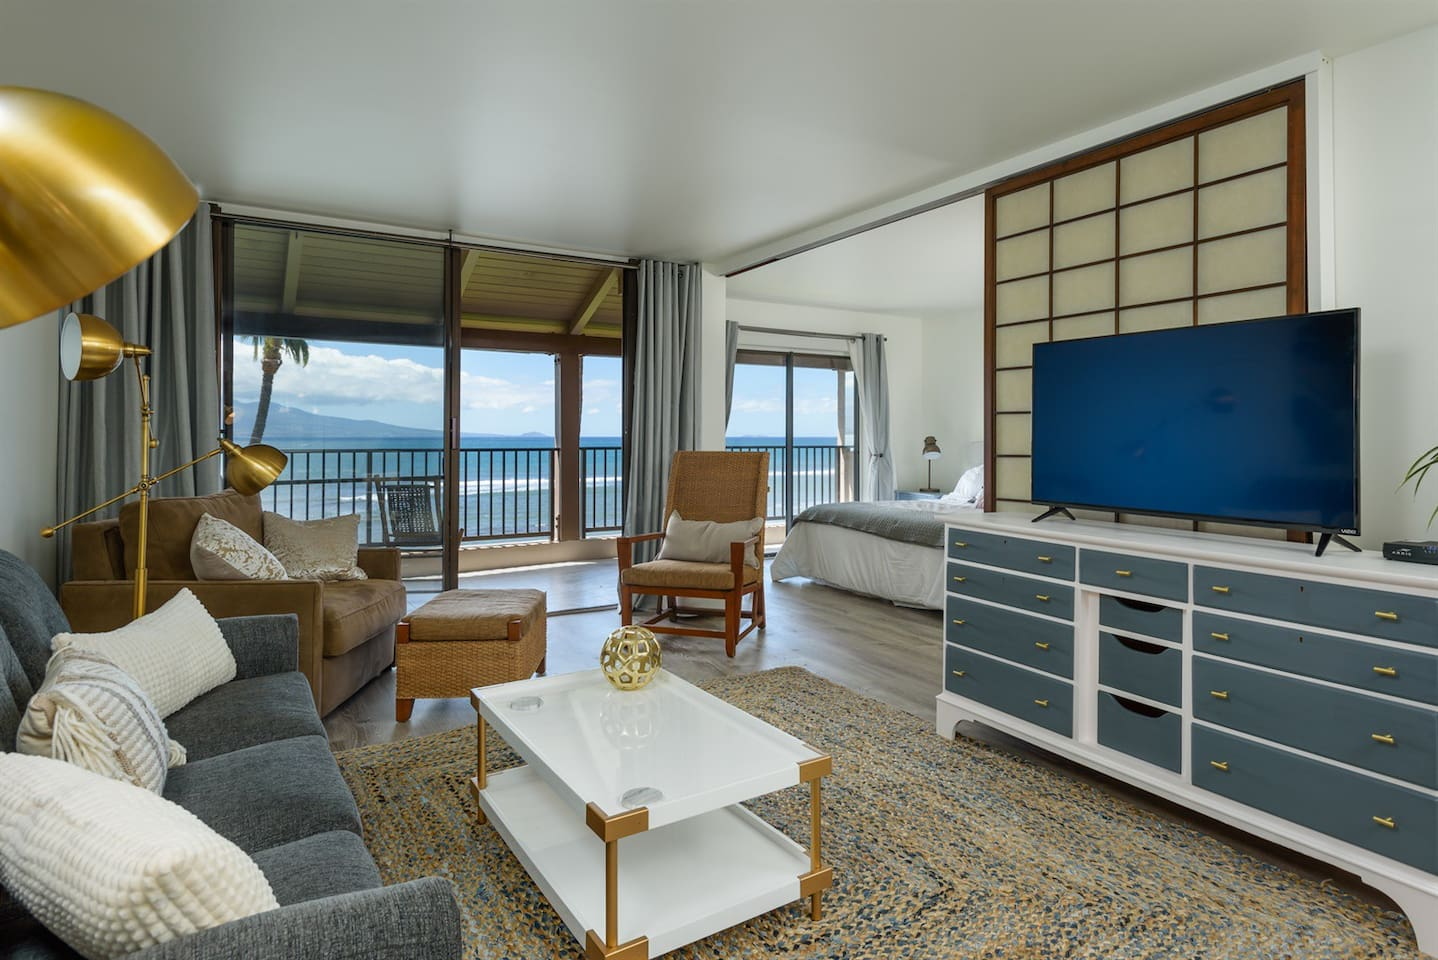 Top 10 Best Bed and Breakfasts in Maui featured by Hawaii blog, Hawaii Travel with Kids: Lounge with family and friends from the comfort of this living room